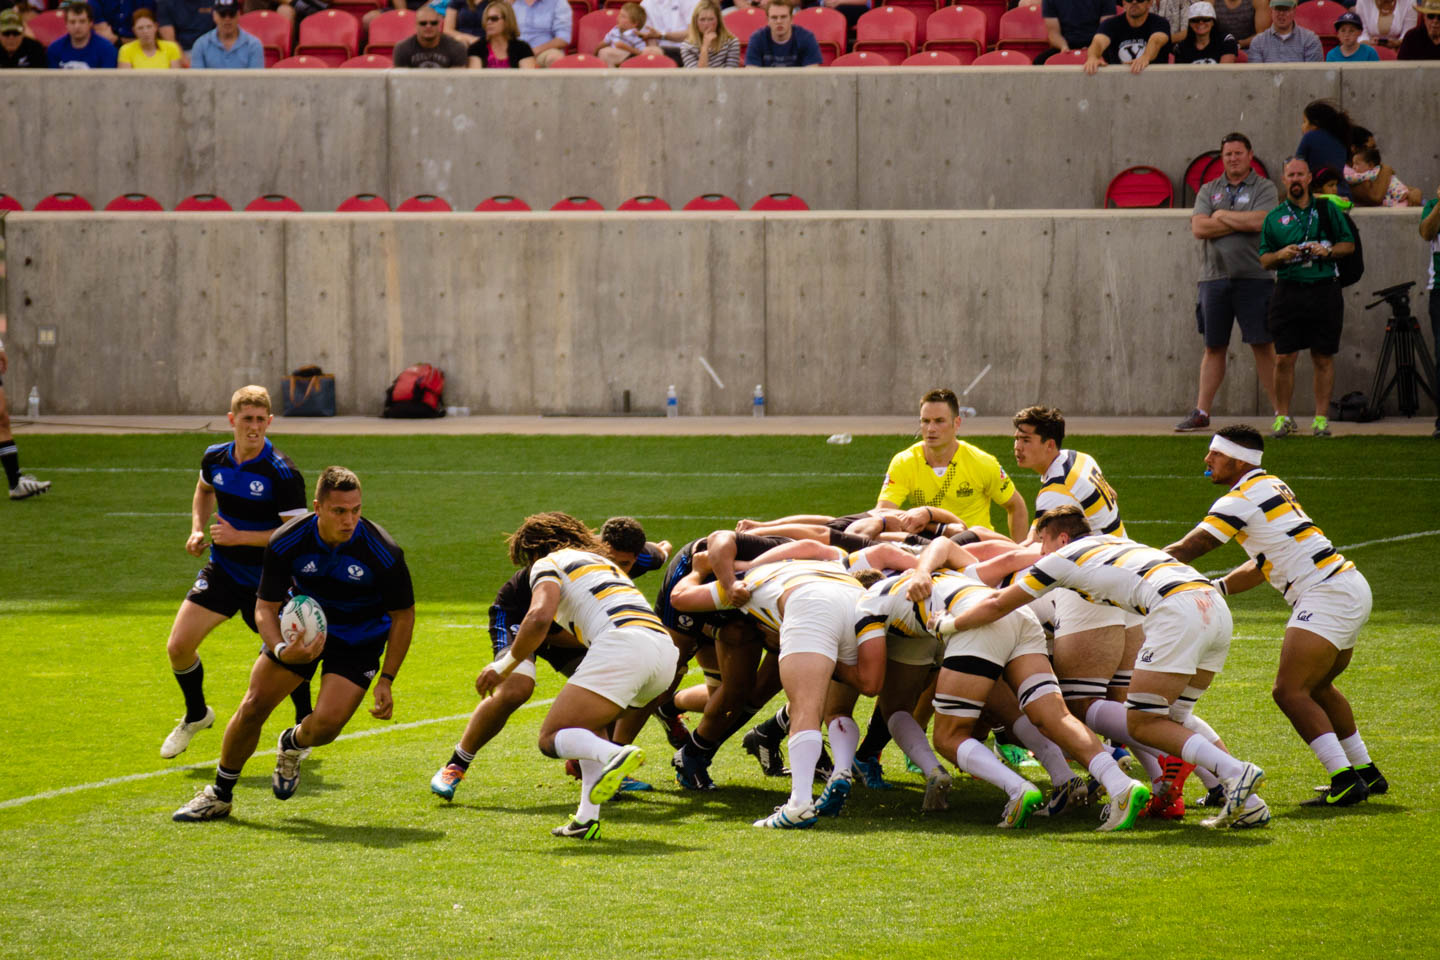 BYU runs the ball after a scrum